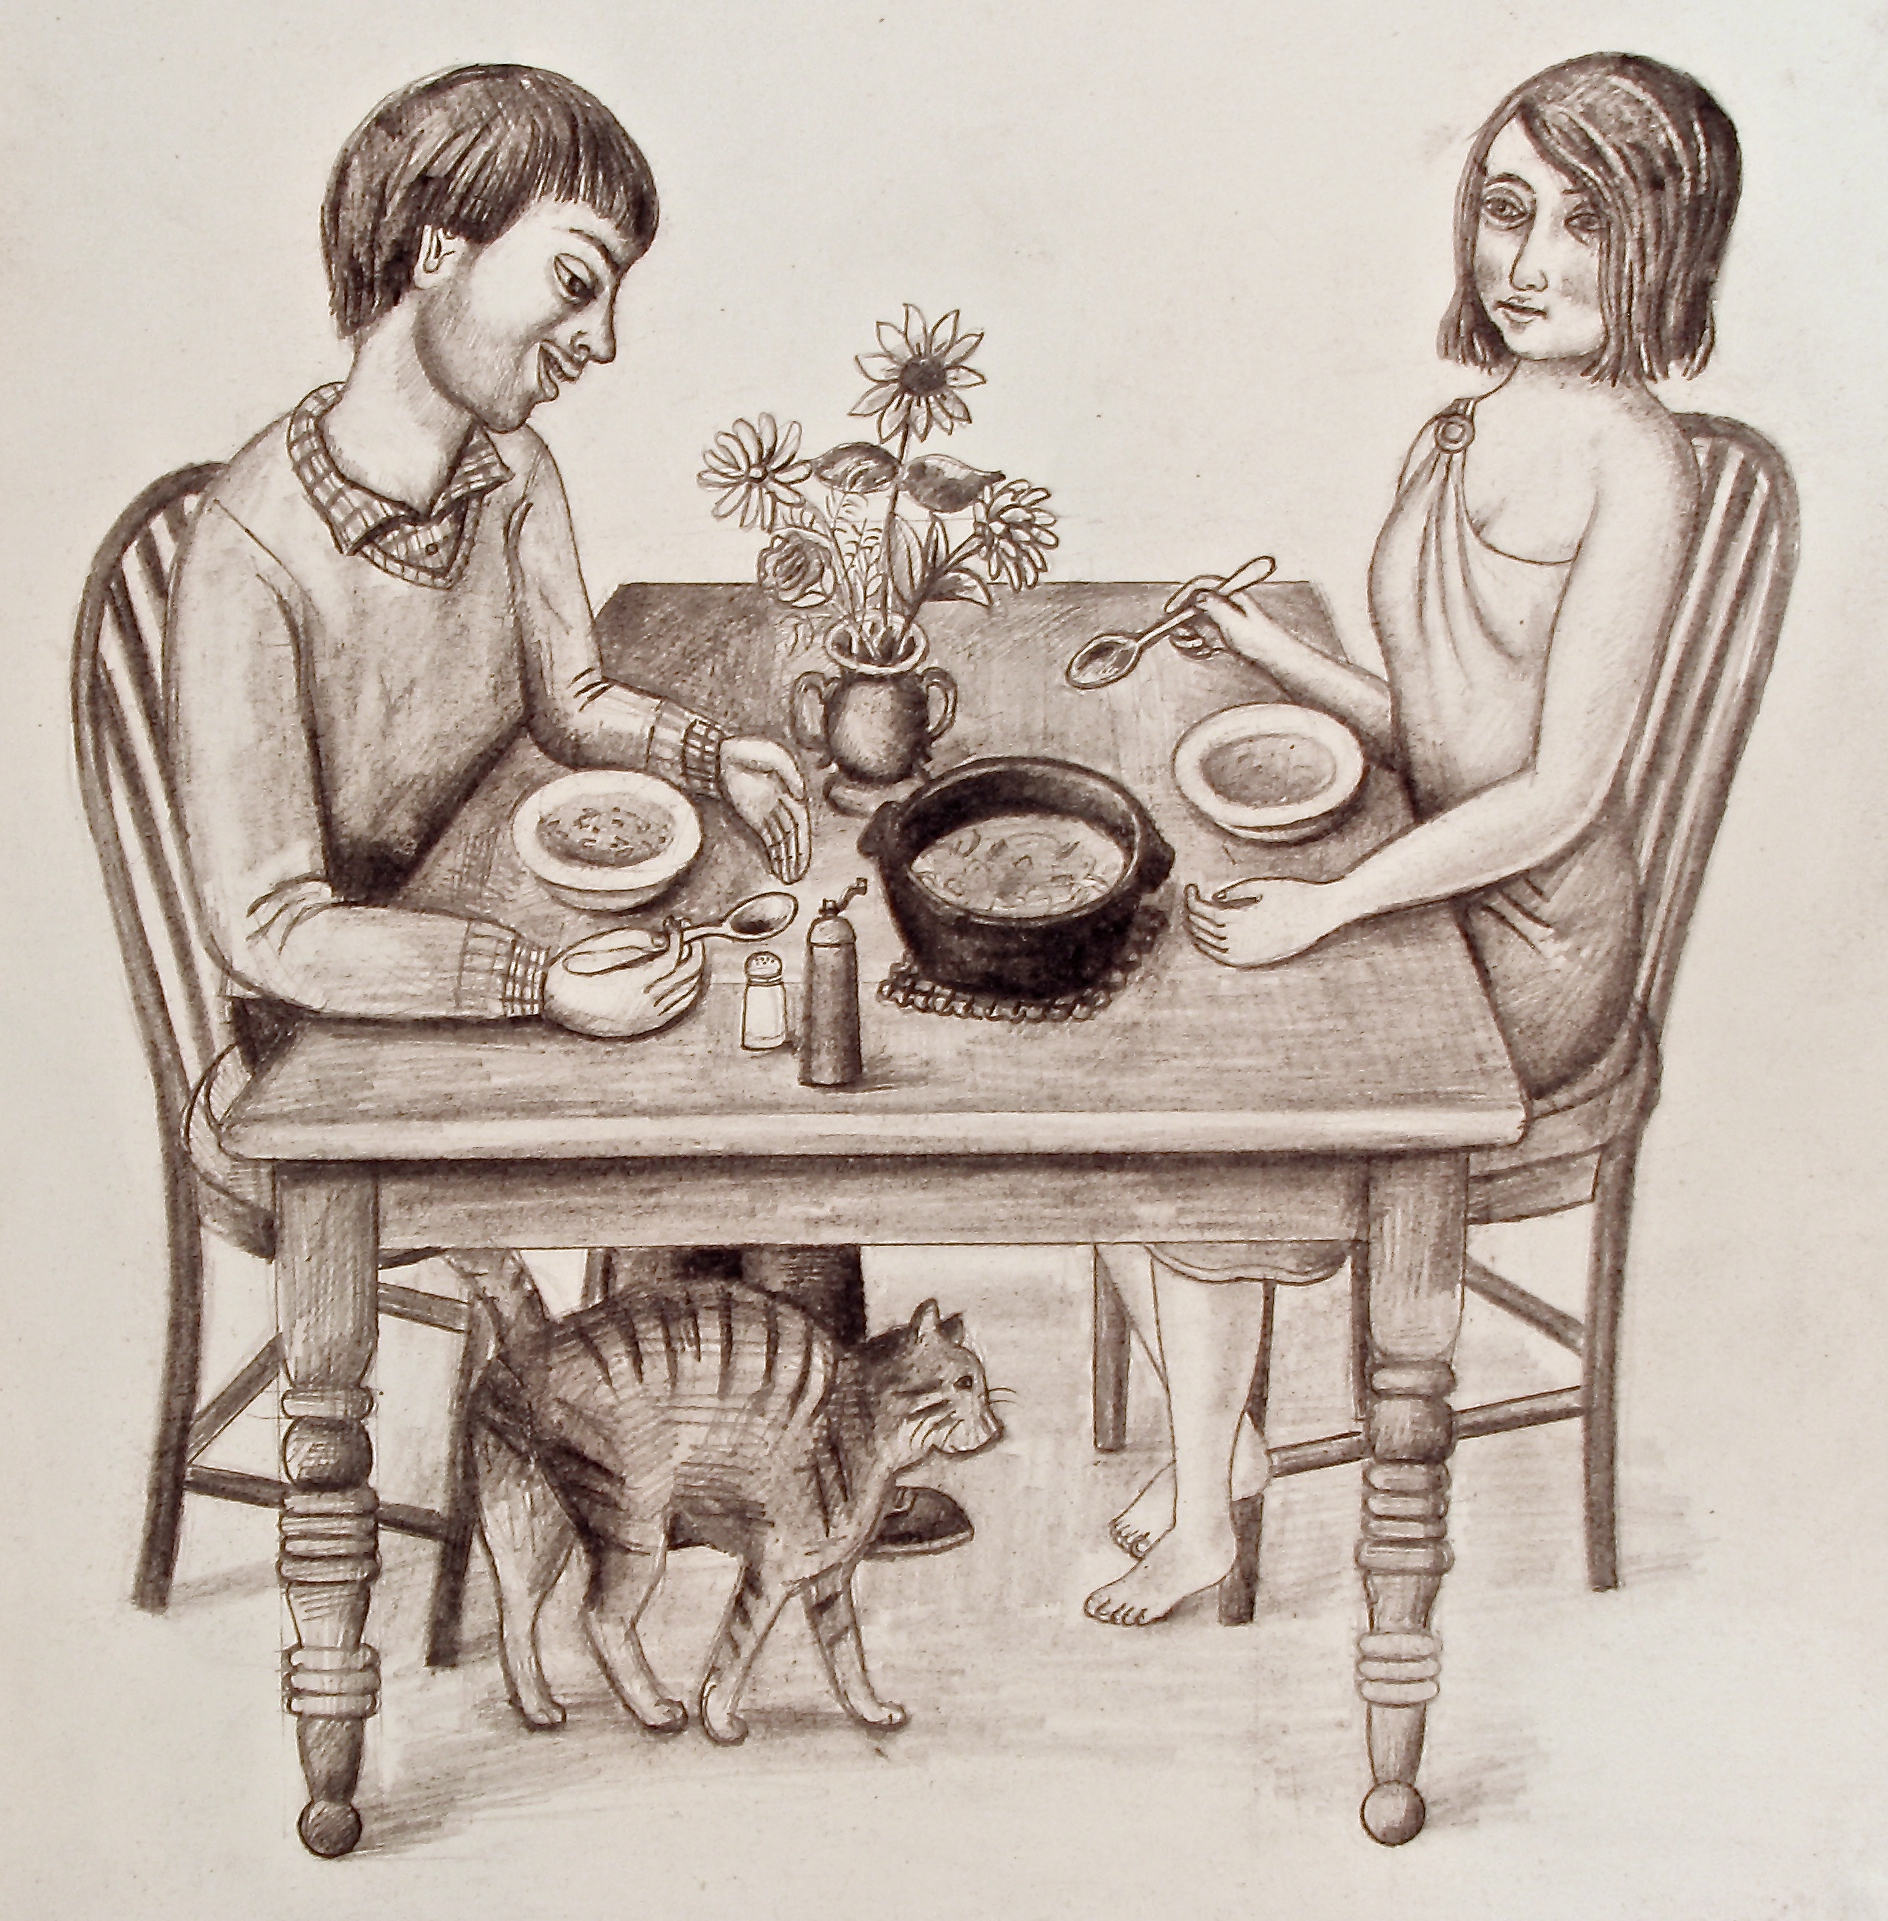 sharing a meal, drawing, graphite, Rick Beerhorst, 2014